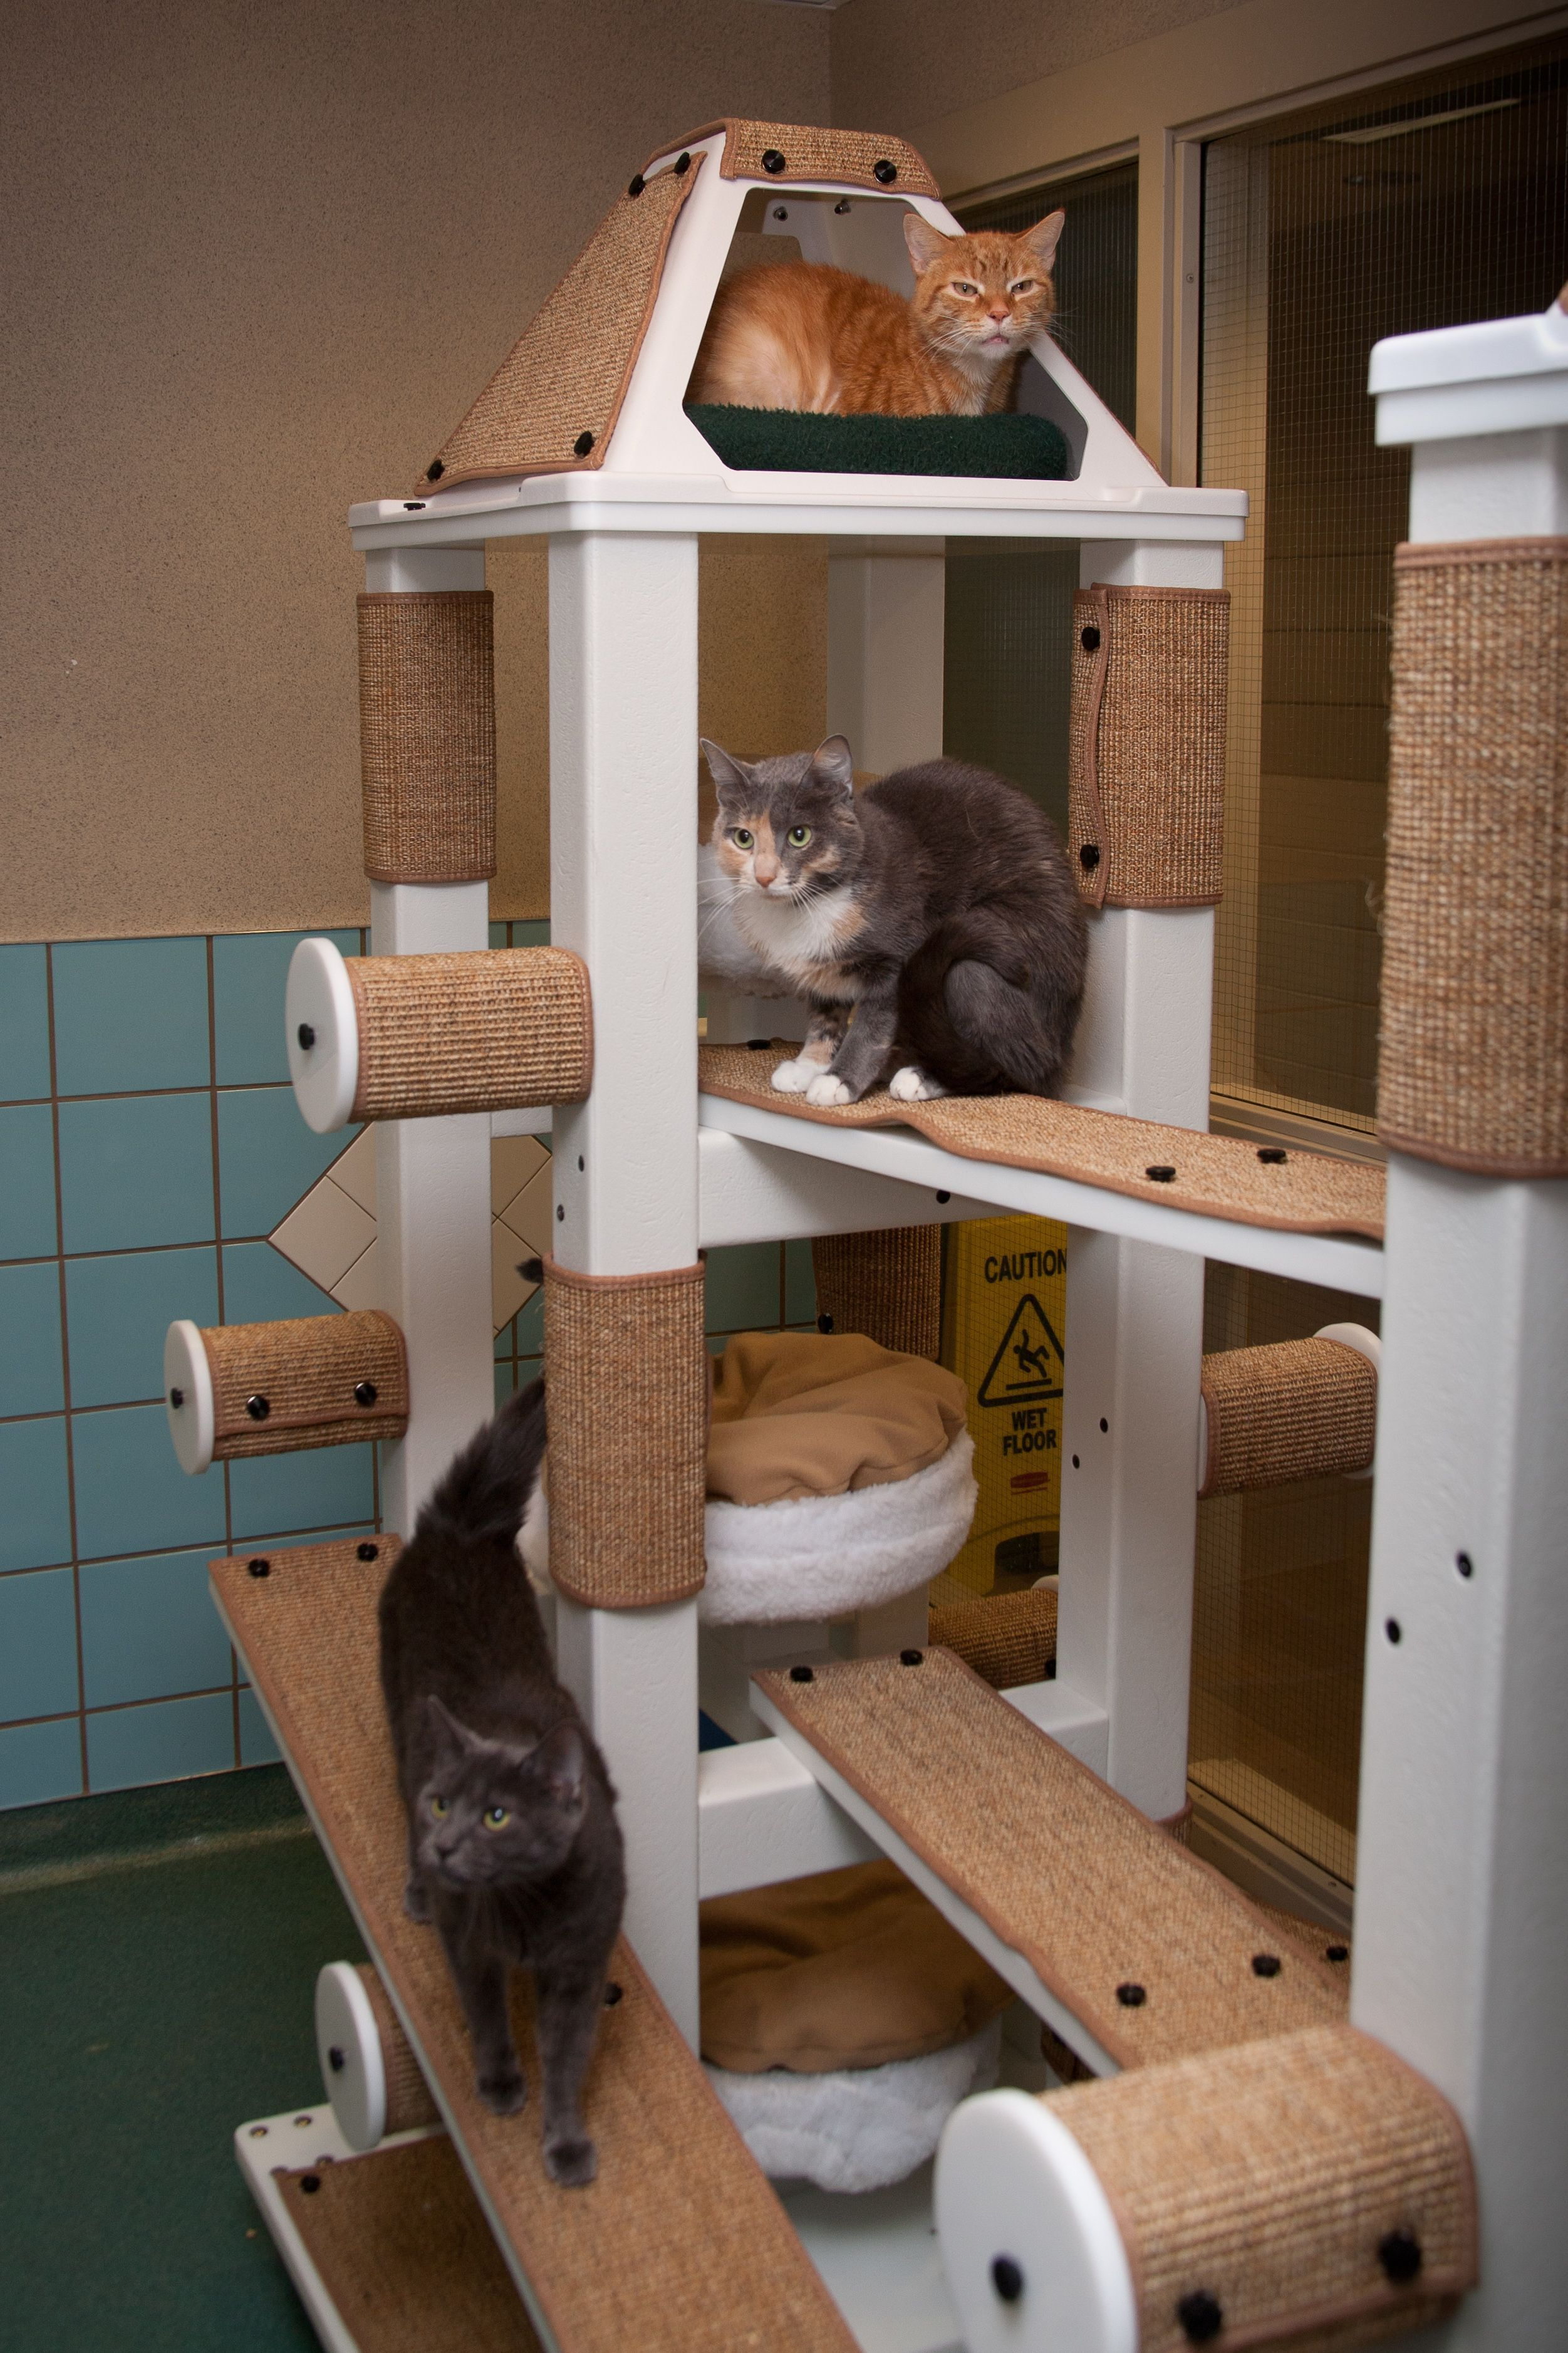 Sublime 16 Cool Diy Cat Trees Https Meowlogy Com 2018 12 20 16 Cool Diy Cat Trees It Is Possible To Gauge The Change Over Time Diy Cat Tree Cat Tree Cat Diy